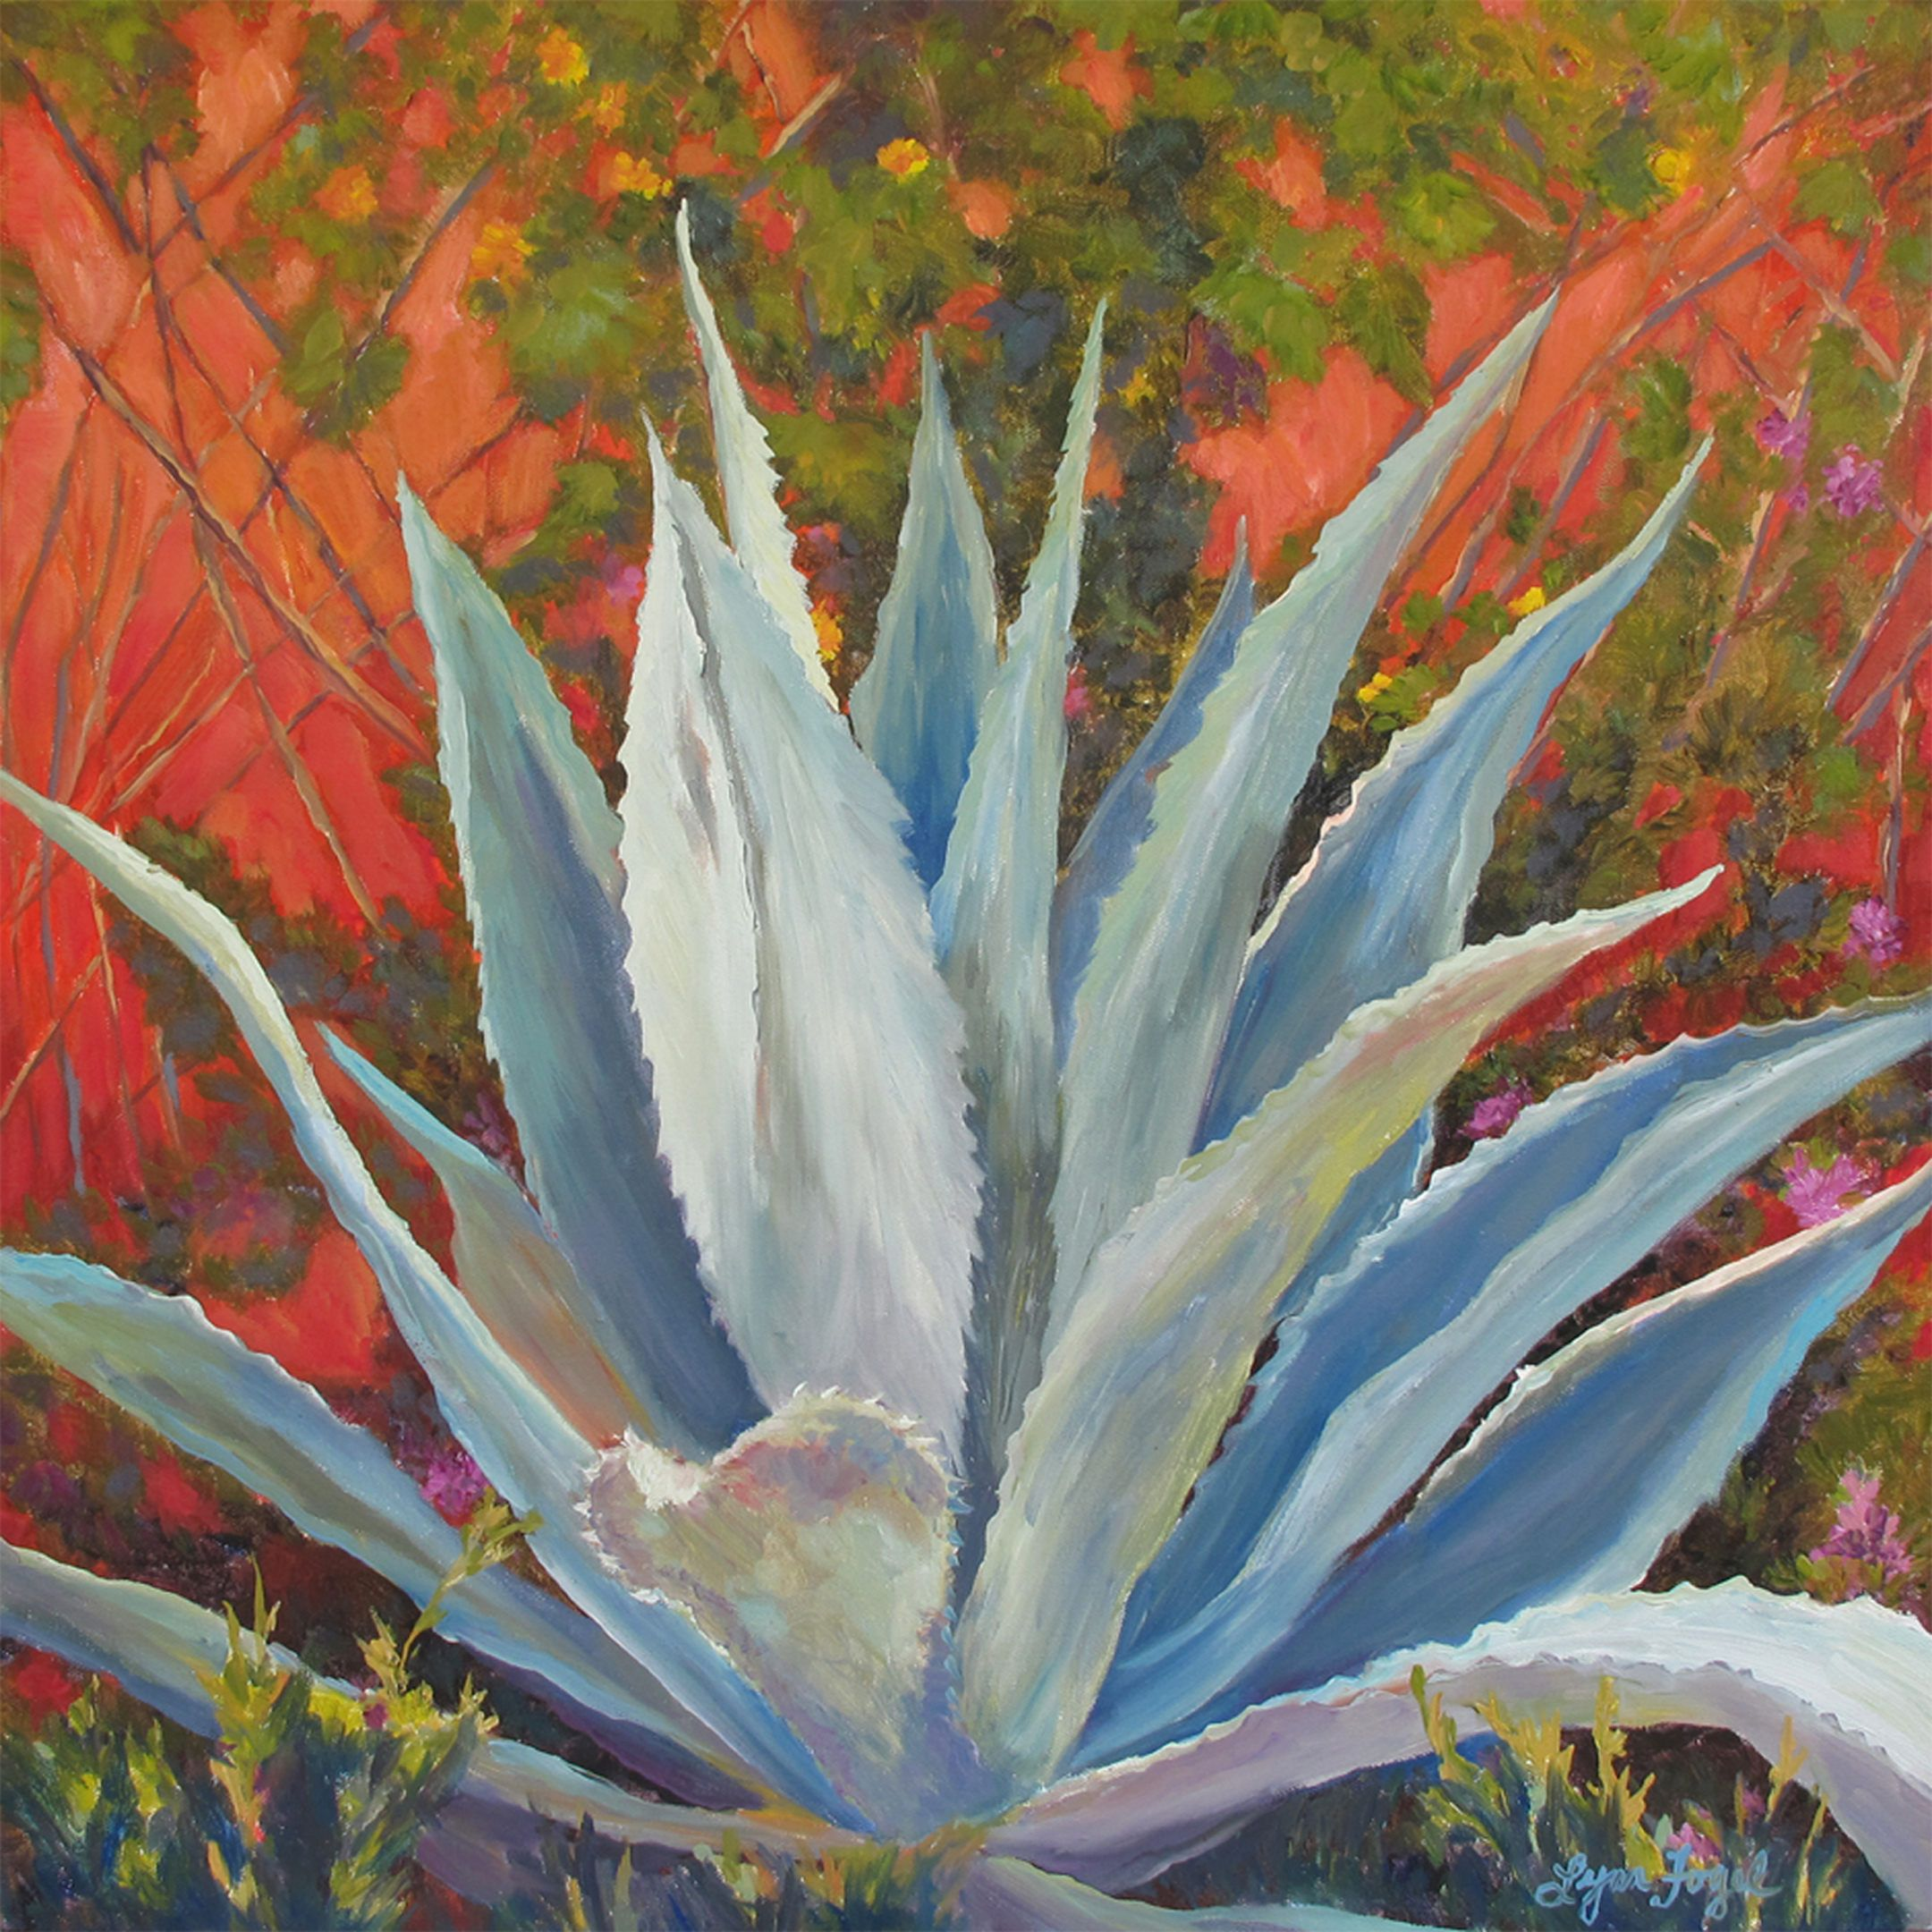 Blue Agave Wall Art Succulent Painting Agave Prints Succulent Art Prints Blue Agave Succulent Prints Cactus Wall Art C Cactus Wall Art Succulent Art Painting